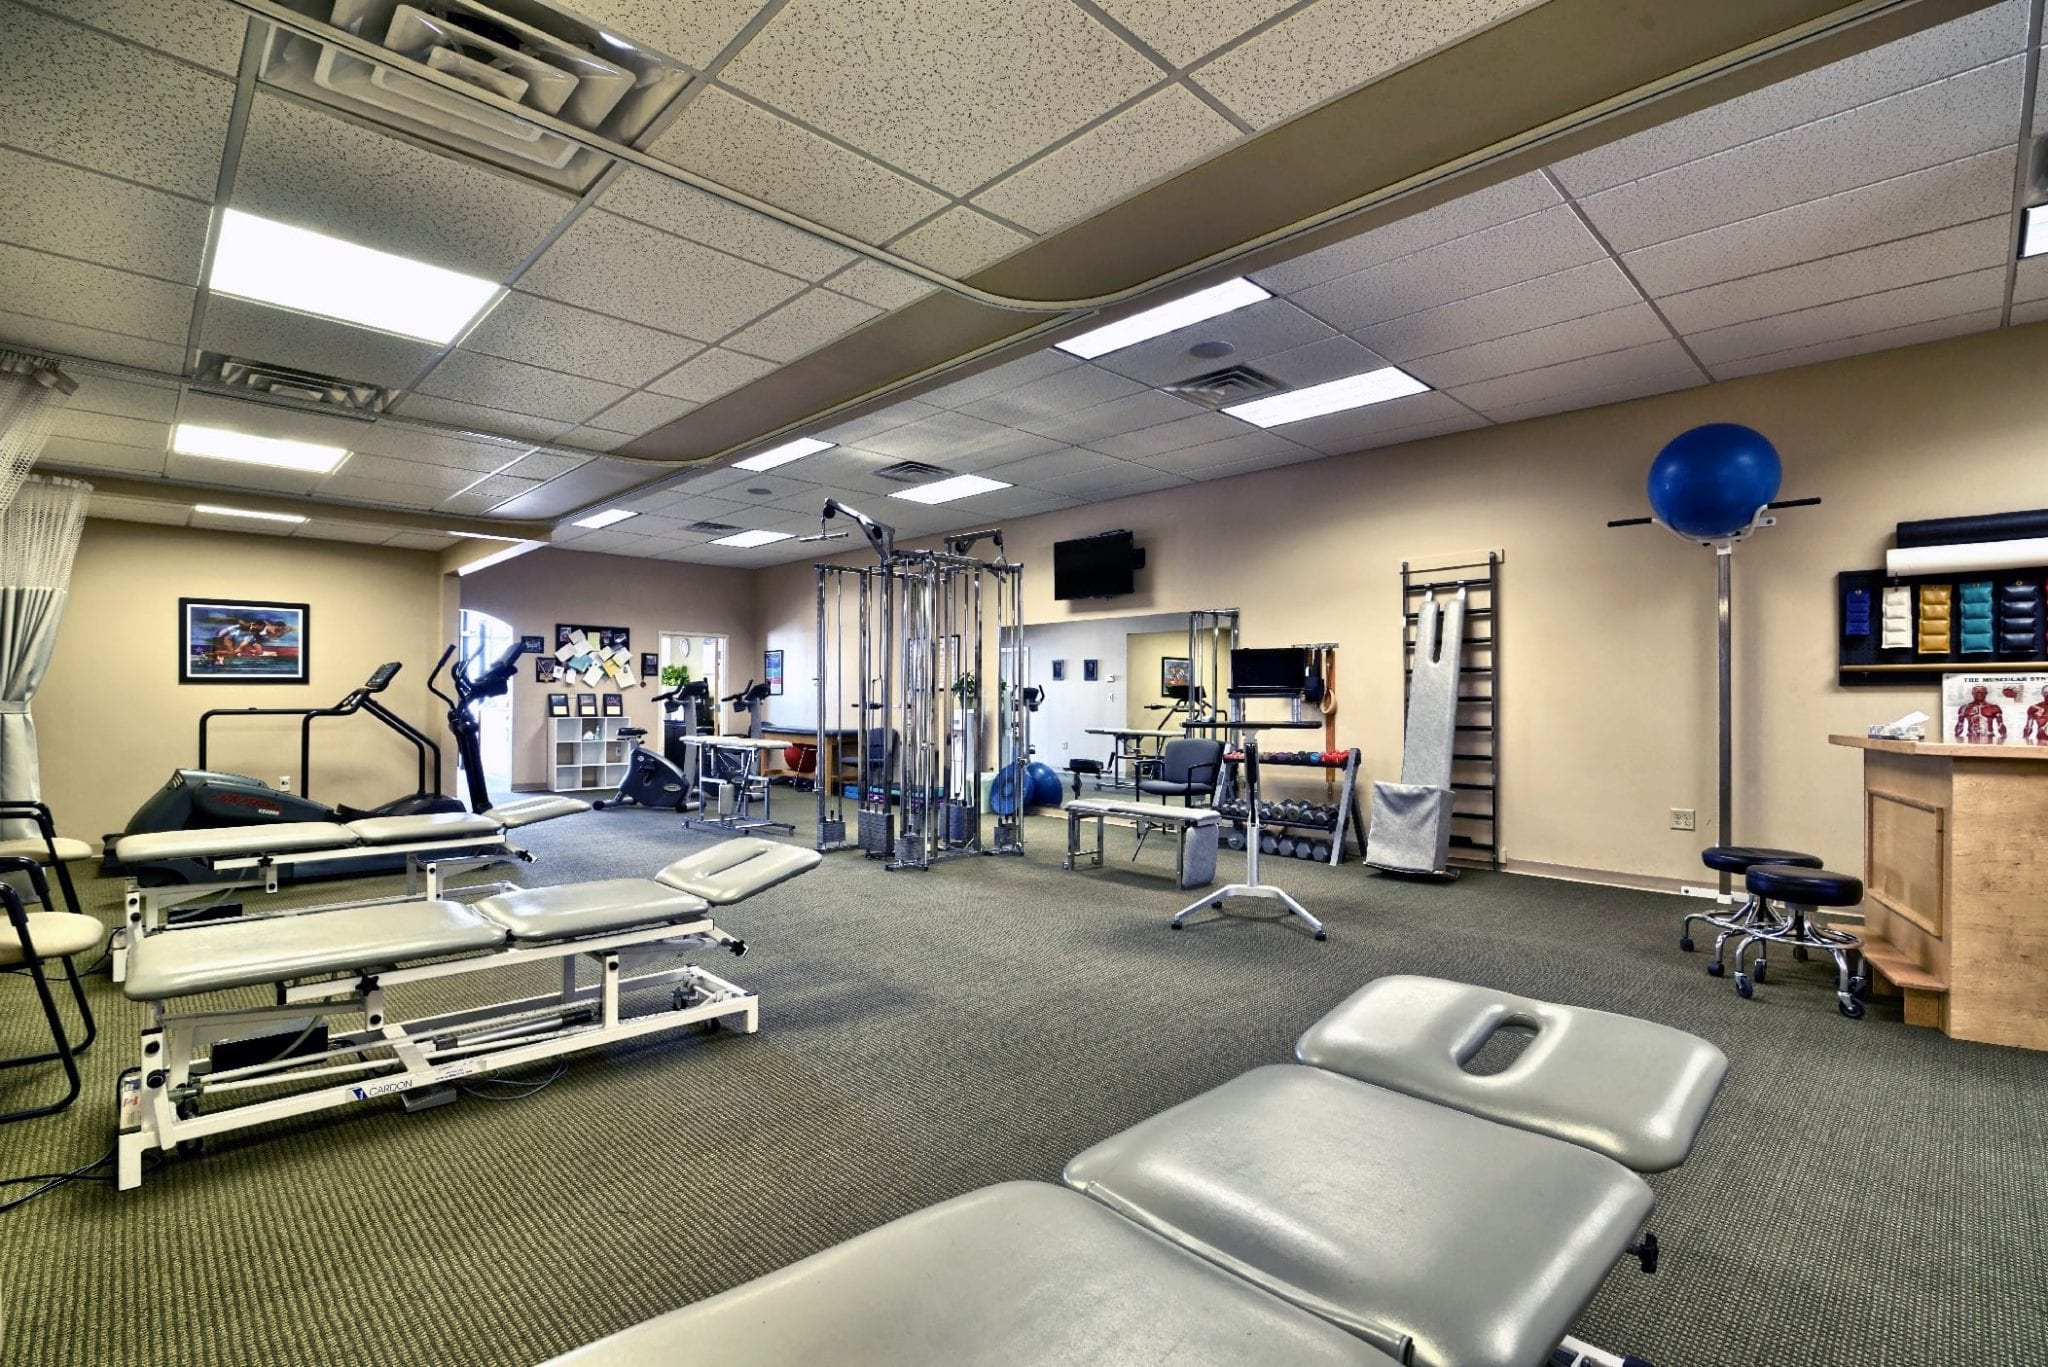 This is a photo of the interior of our physical therapy clinic in Epping, New Hampshire. This image shows a clean facility.